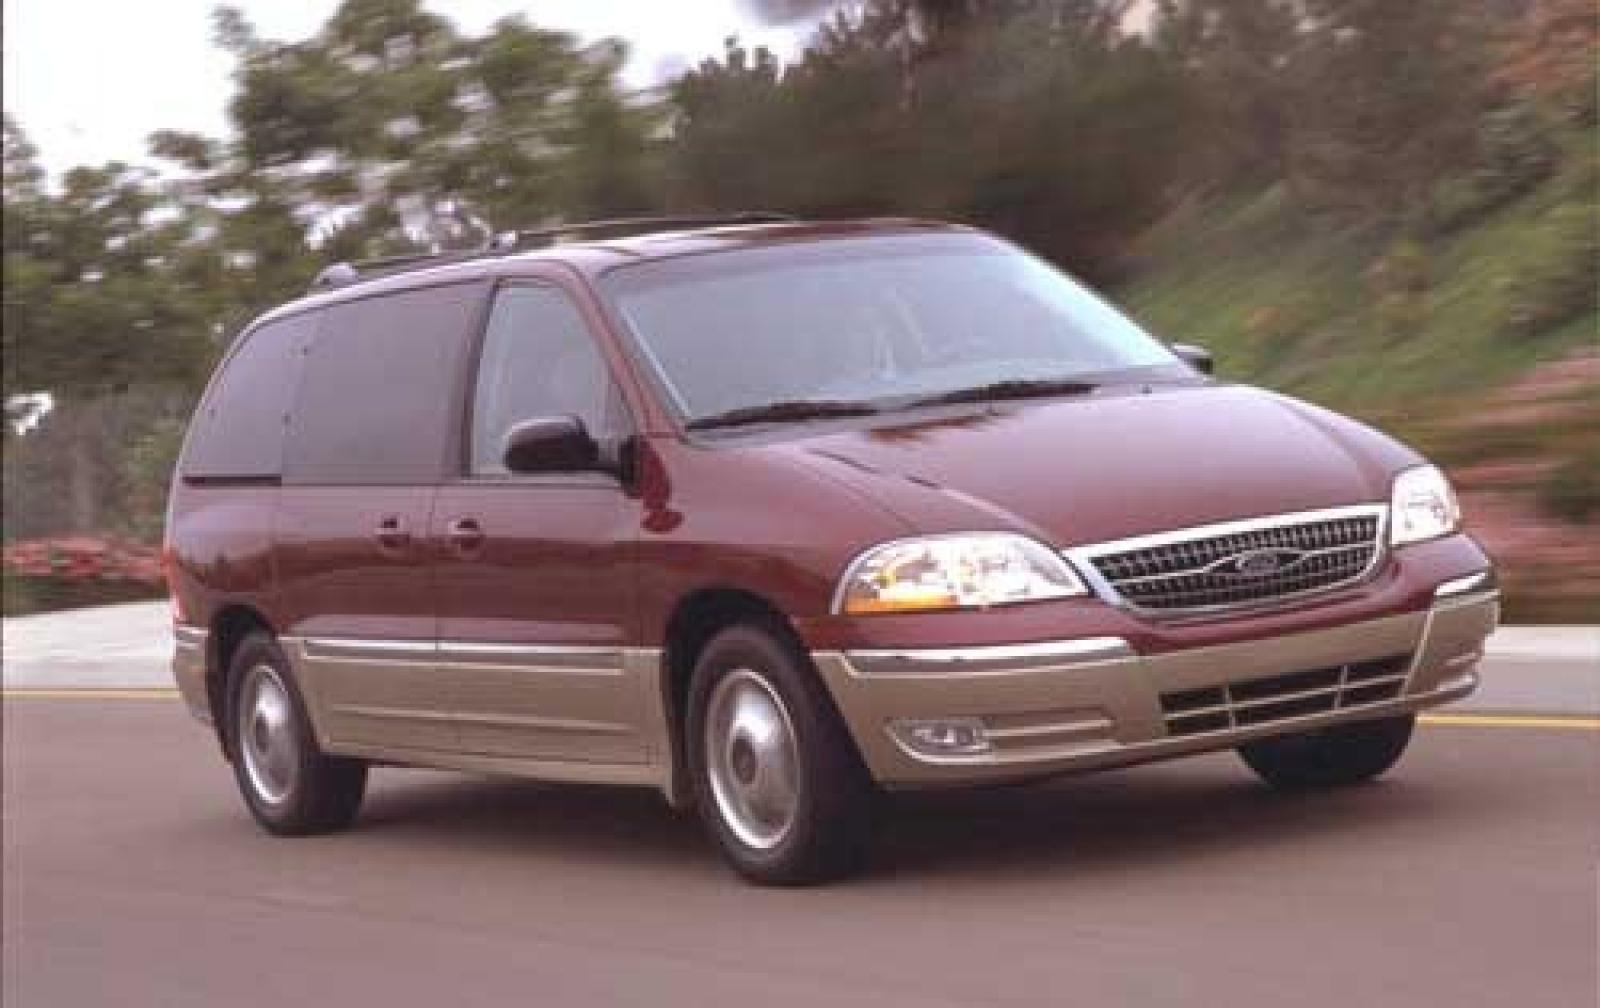 2003 Ford Windstar Information And Photos Zombiedrive Sel 2 2002 Lx 4dr Exterior 800 1024 1280 1600 Origin